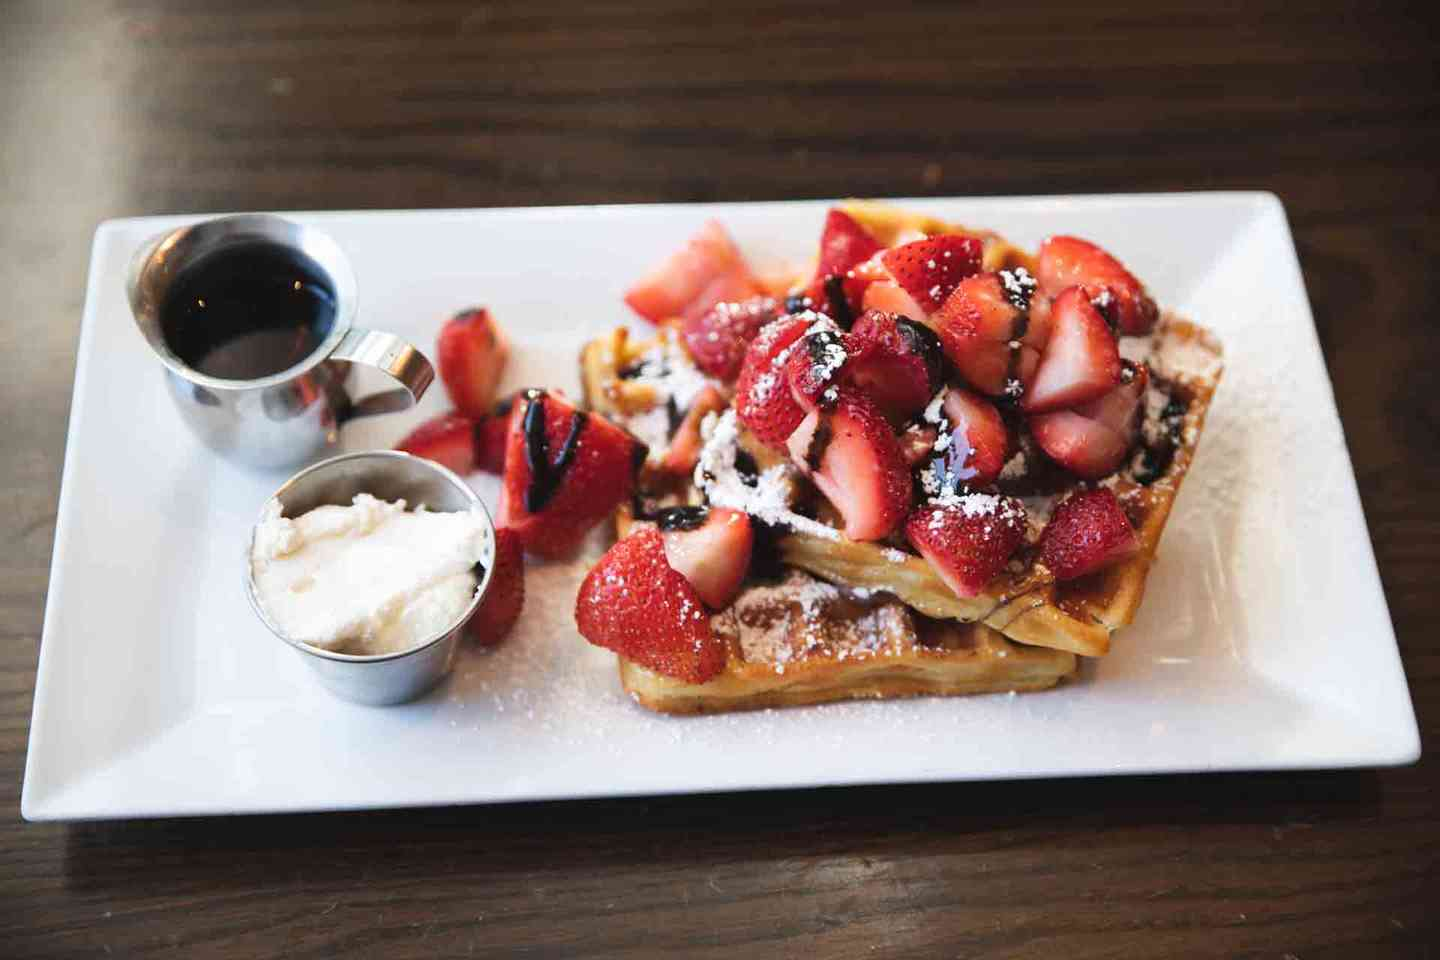 Strawberries and Chocolate Waffles